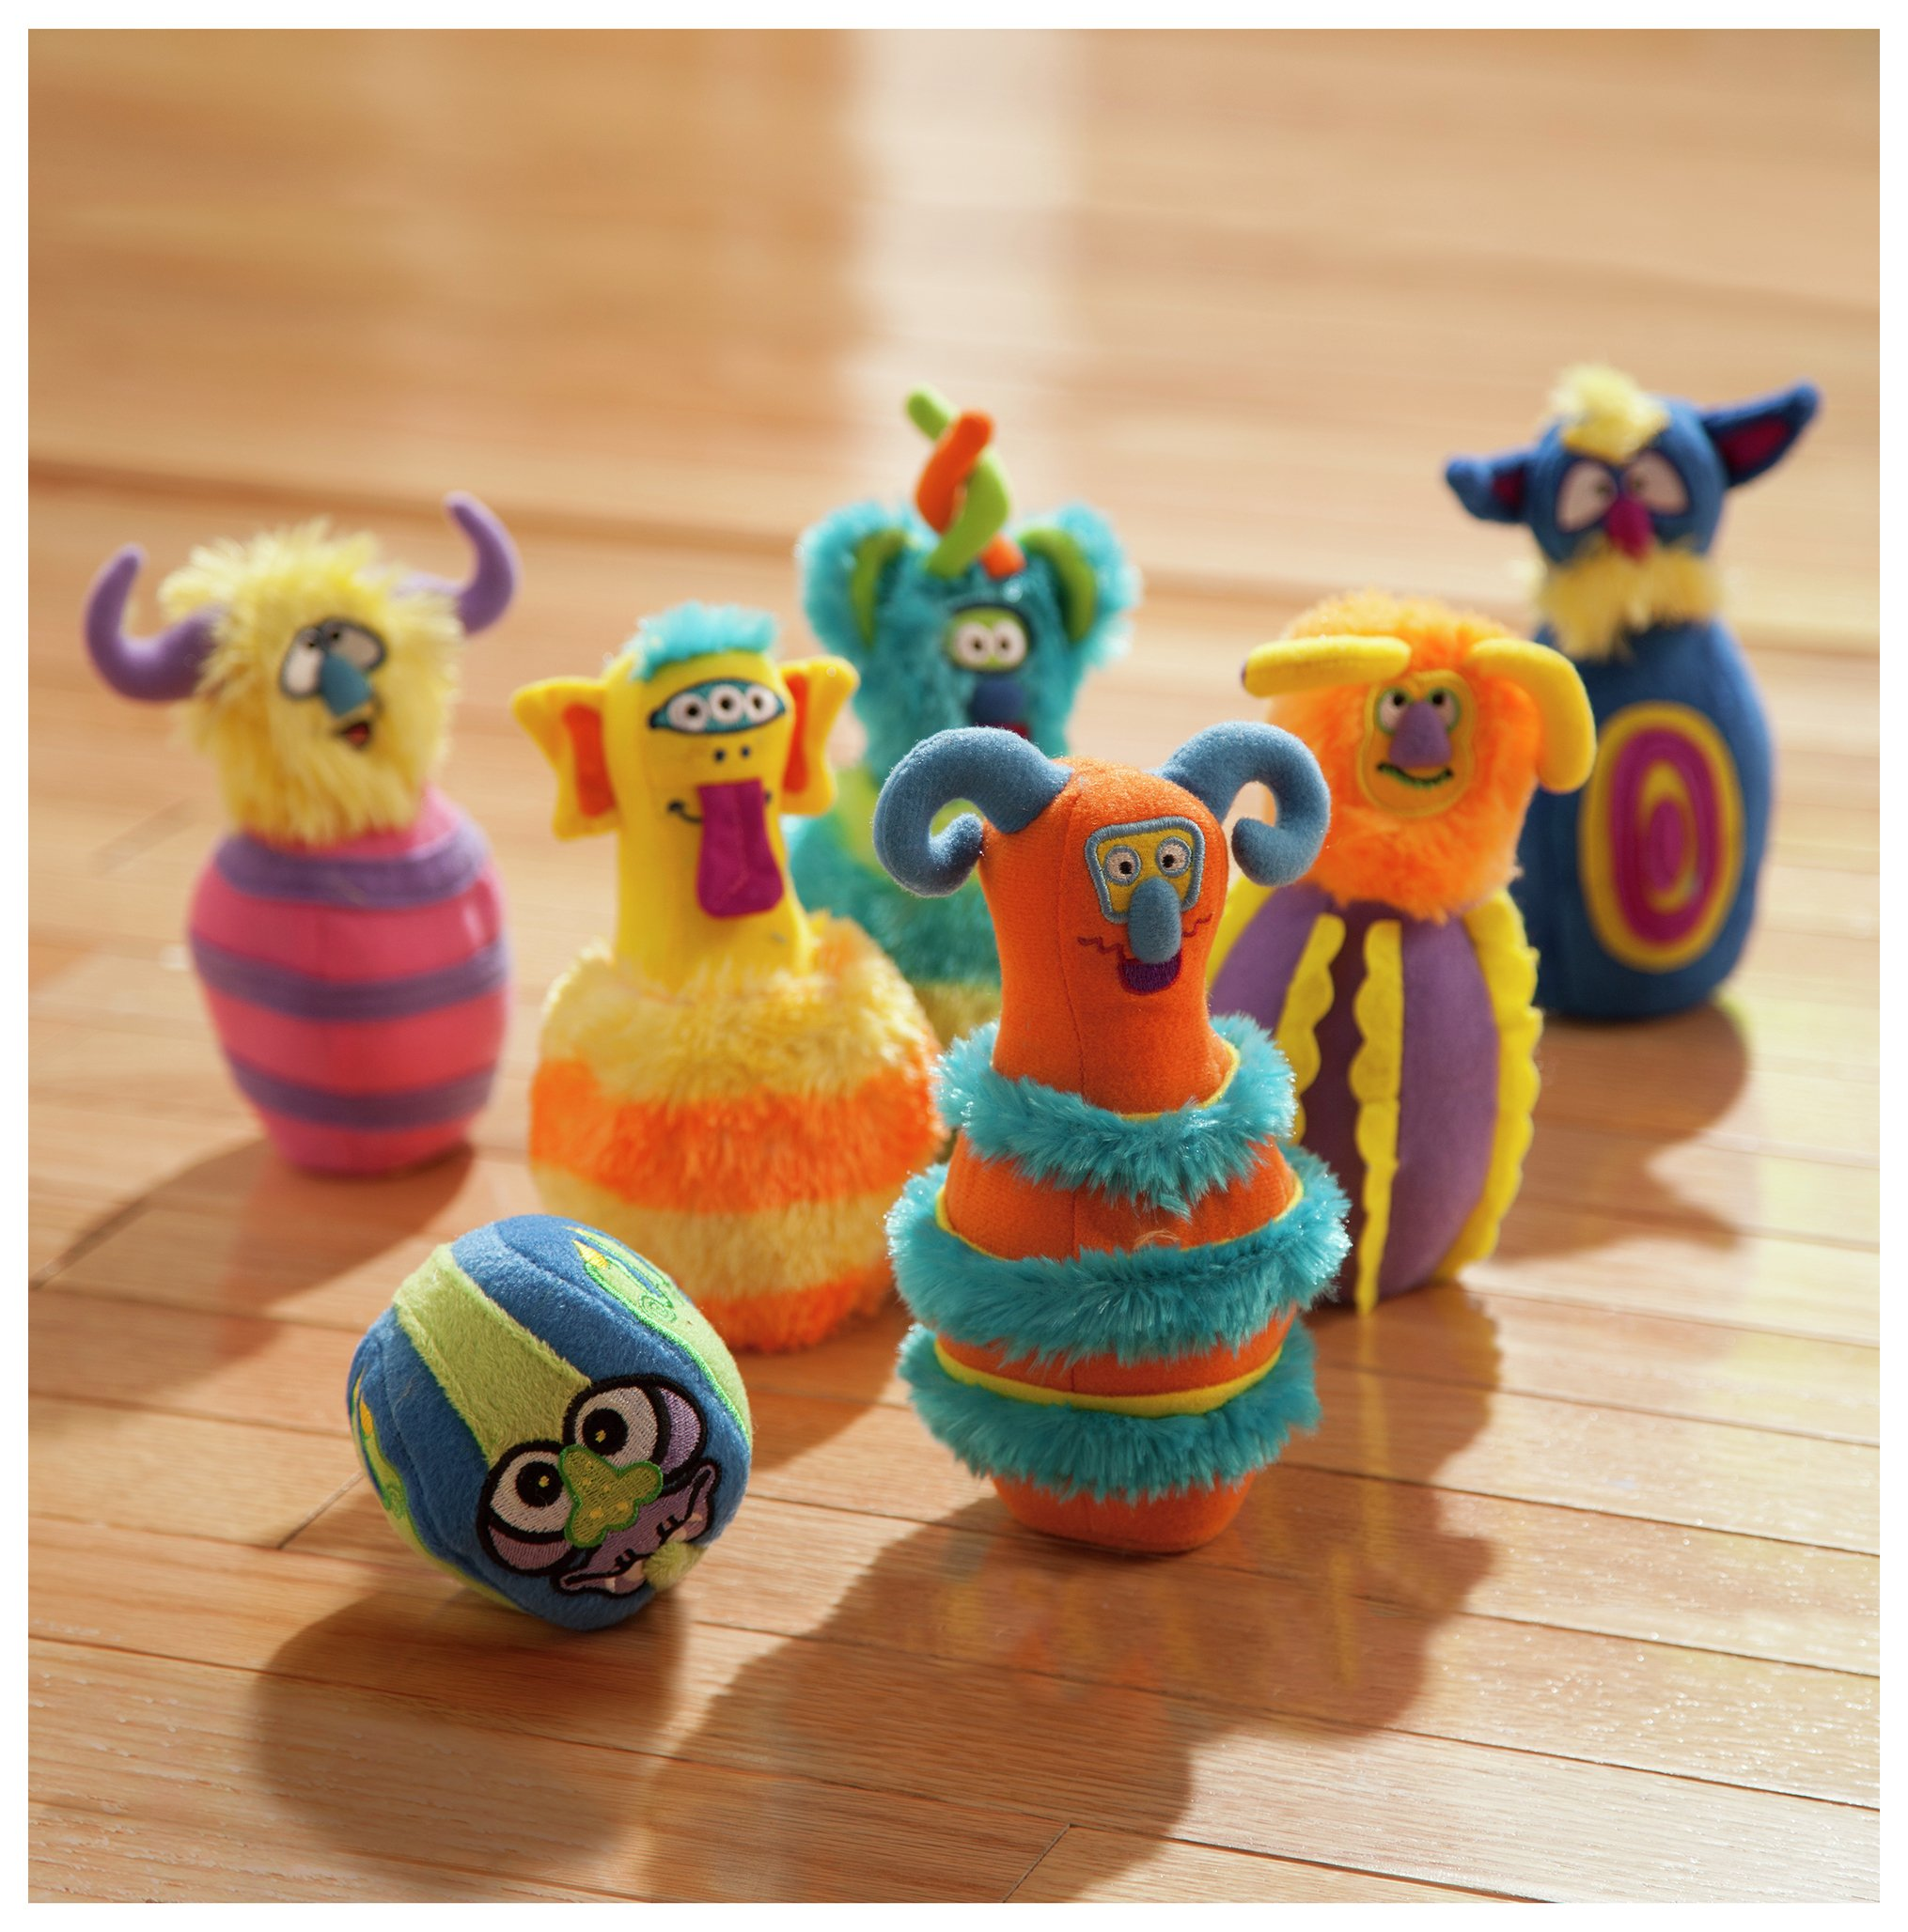 Melissa & doug Monster Bowling Soft Toy Set